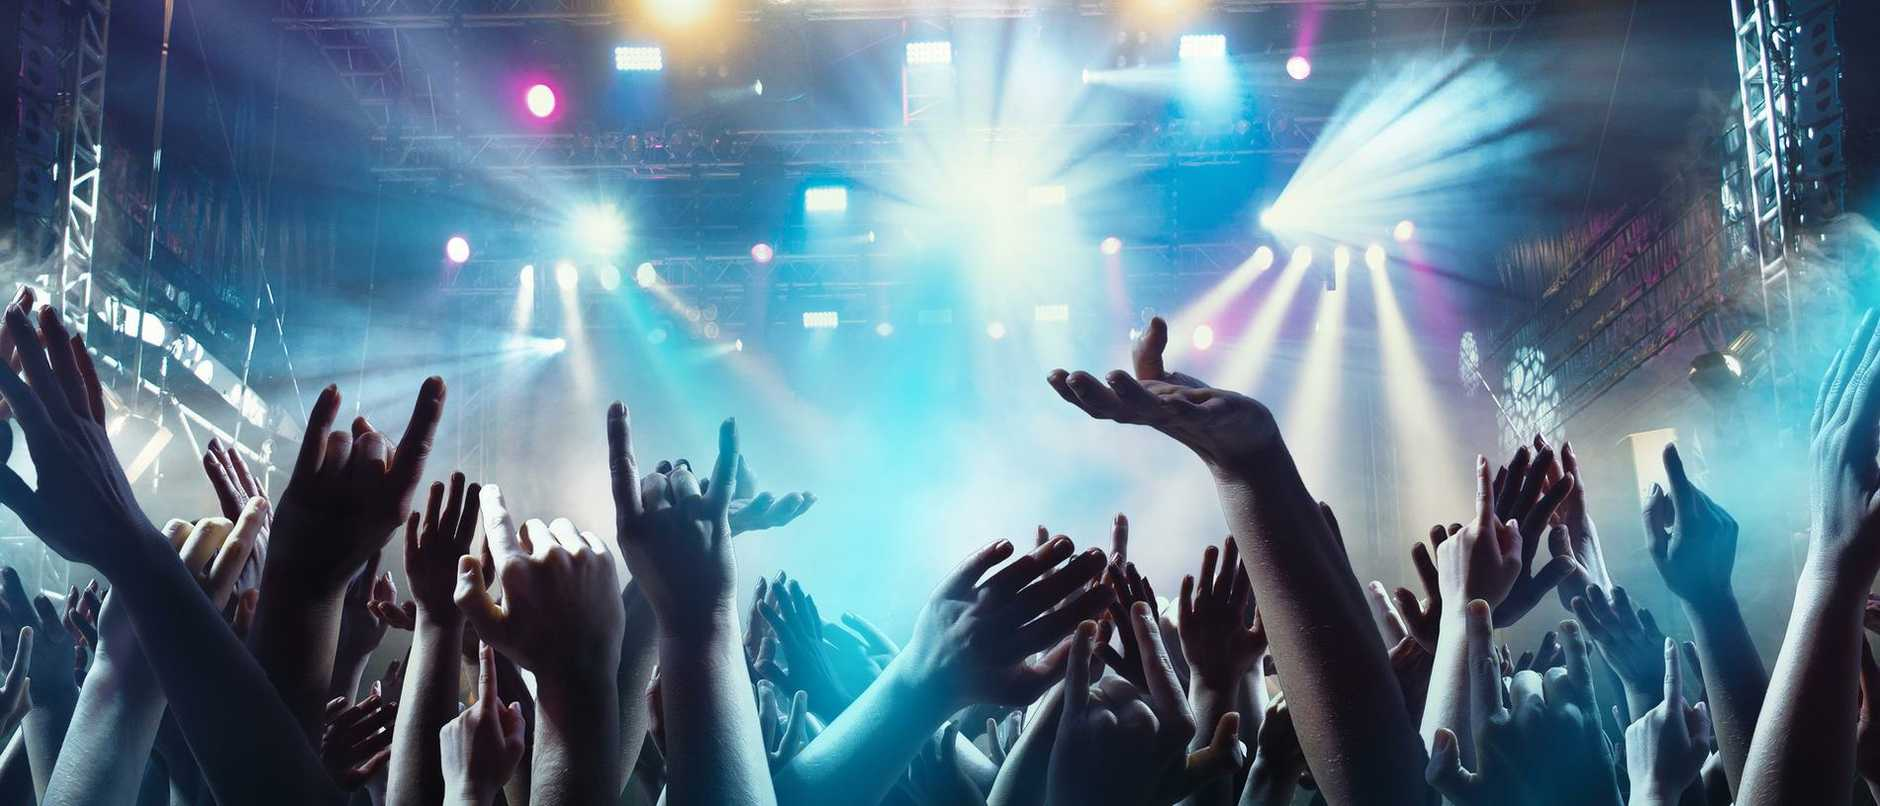 Small business owners and musicians have been left out of pocket and furious a music event was cancelled days before it was due to start.